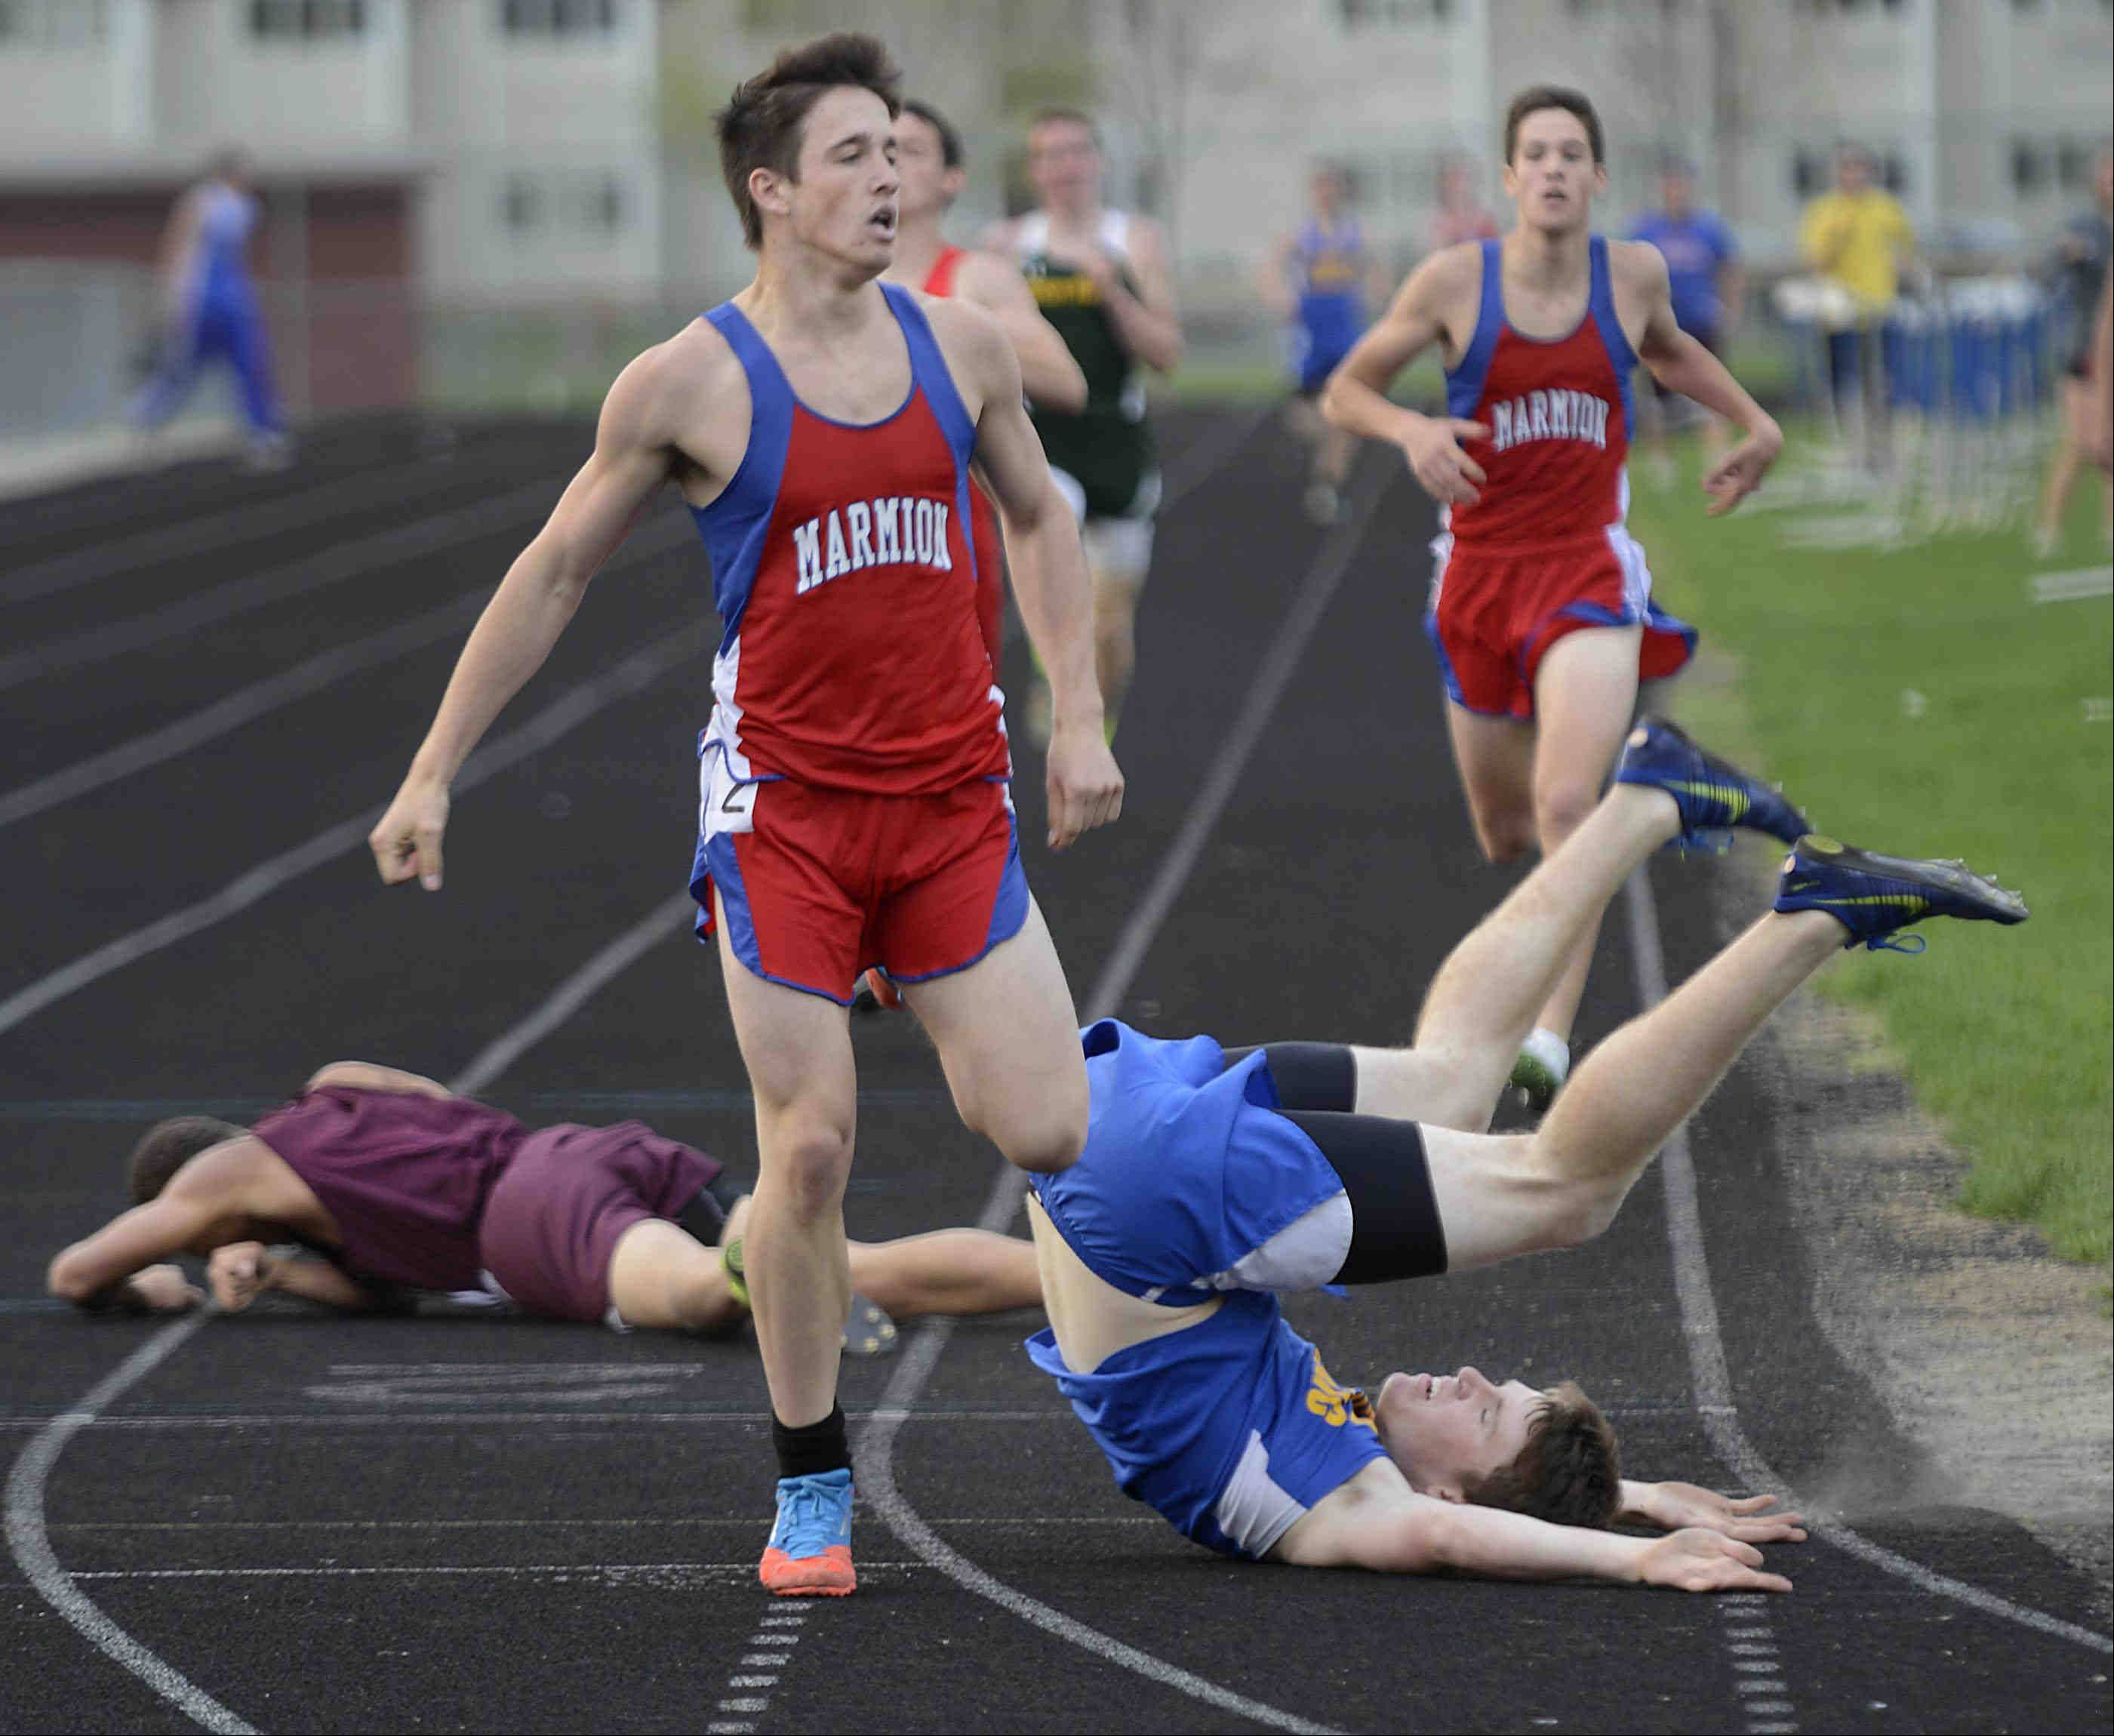 Aurora Central Catholic's Matt Meyers rolls on his shoulders after falling first (unofficially) across the finish line in the 800-meter run Wednesday at the Suburban Christian Conference boys track meet at Aurora Central Catholic. At left is Marmion Academy's Kevin Grahovec, who finished second. On the ground in the background is Wheaton Academy's Noah Van Dyke, who crawled across the finish line after falling.